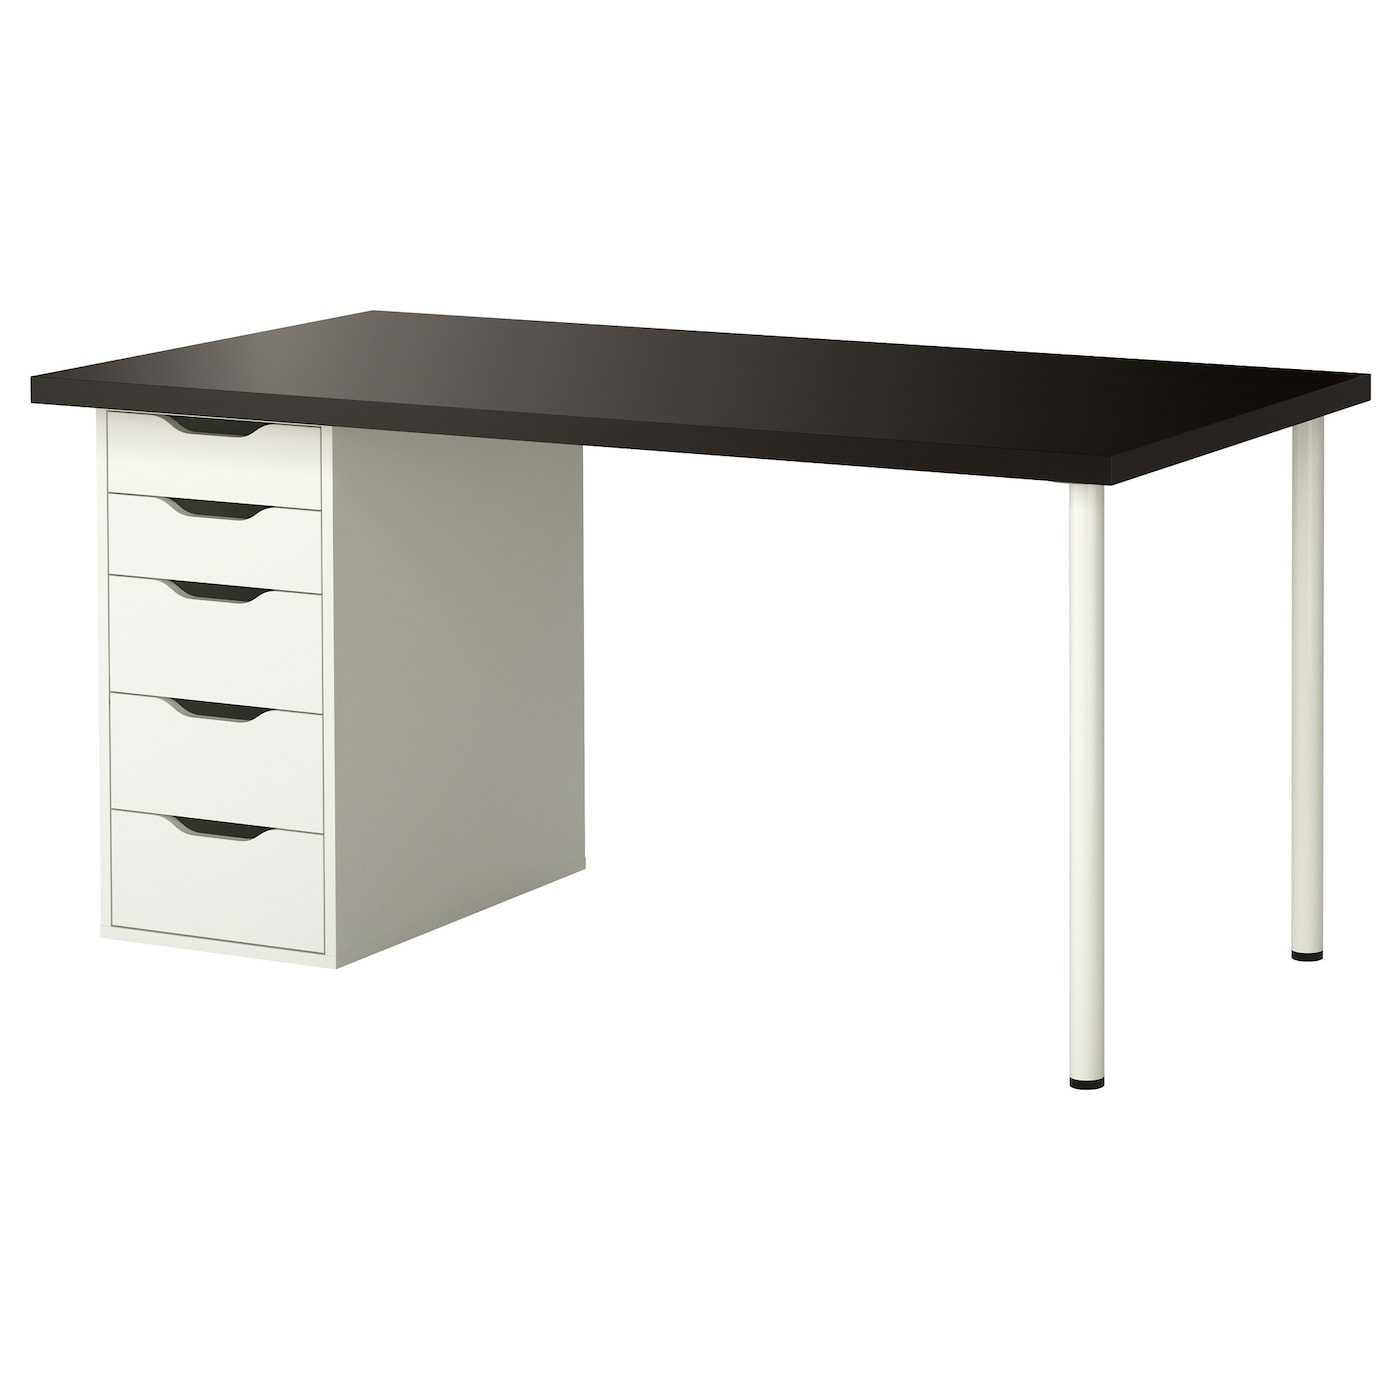 ikea linnmon desk with alex drawers hostgarcia. Black Bedroom Furniture Sets. Home Design Ideas